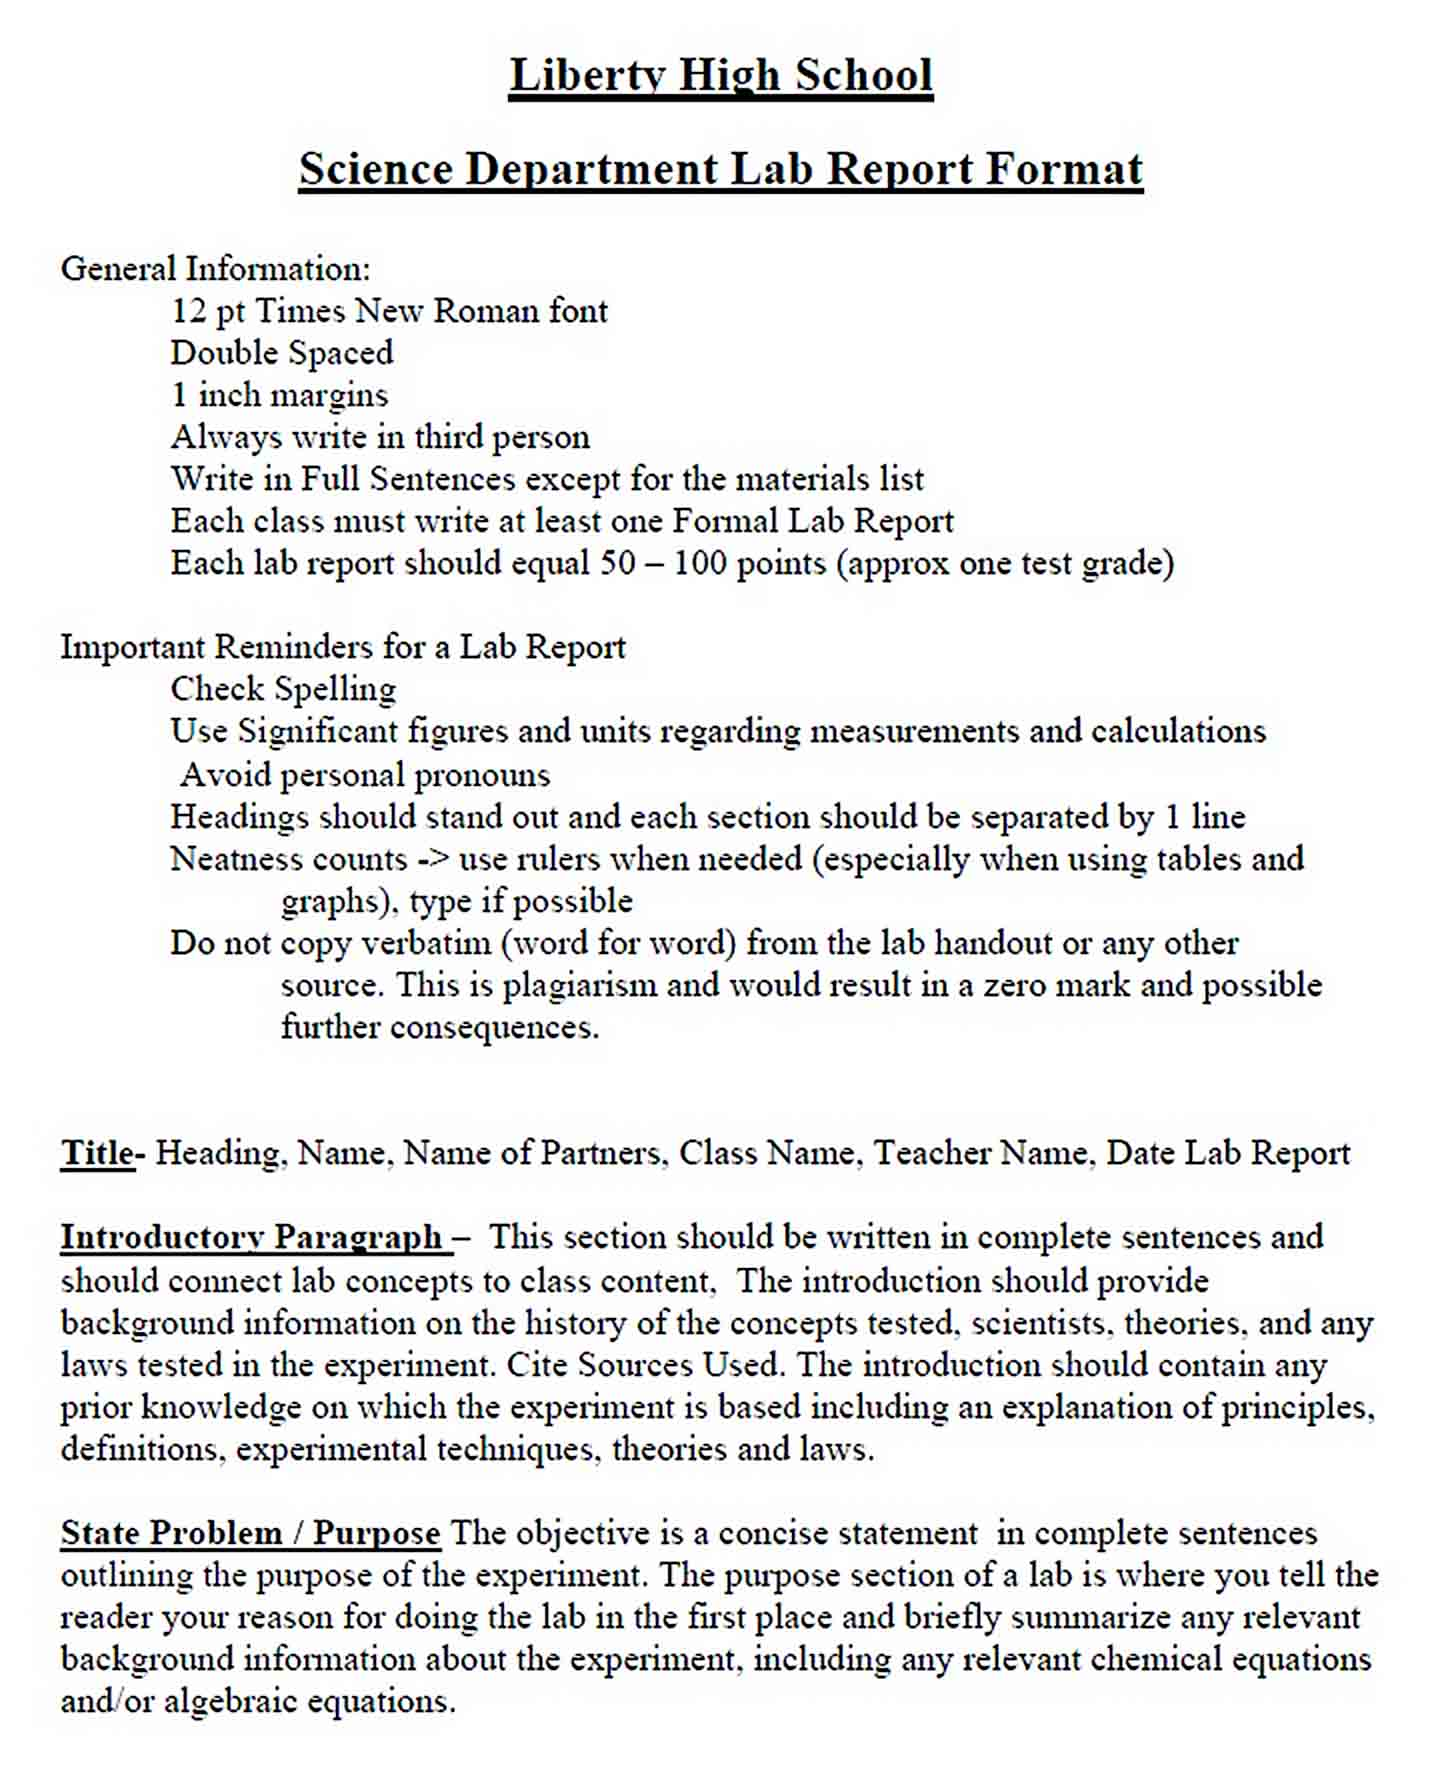 Templates Science Department Lab Report